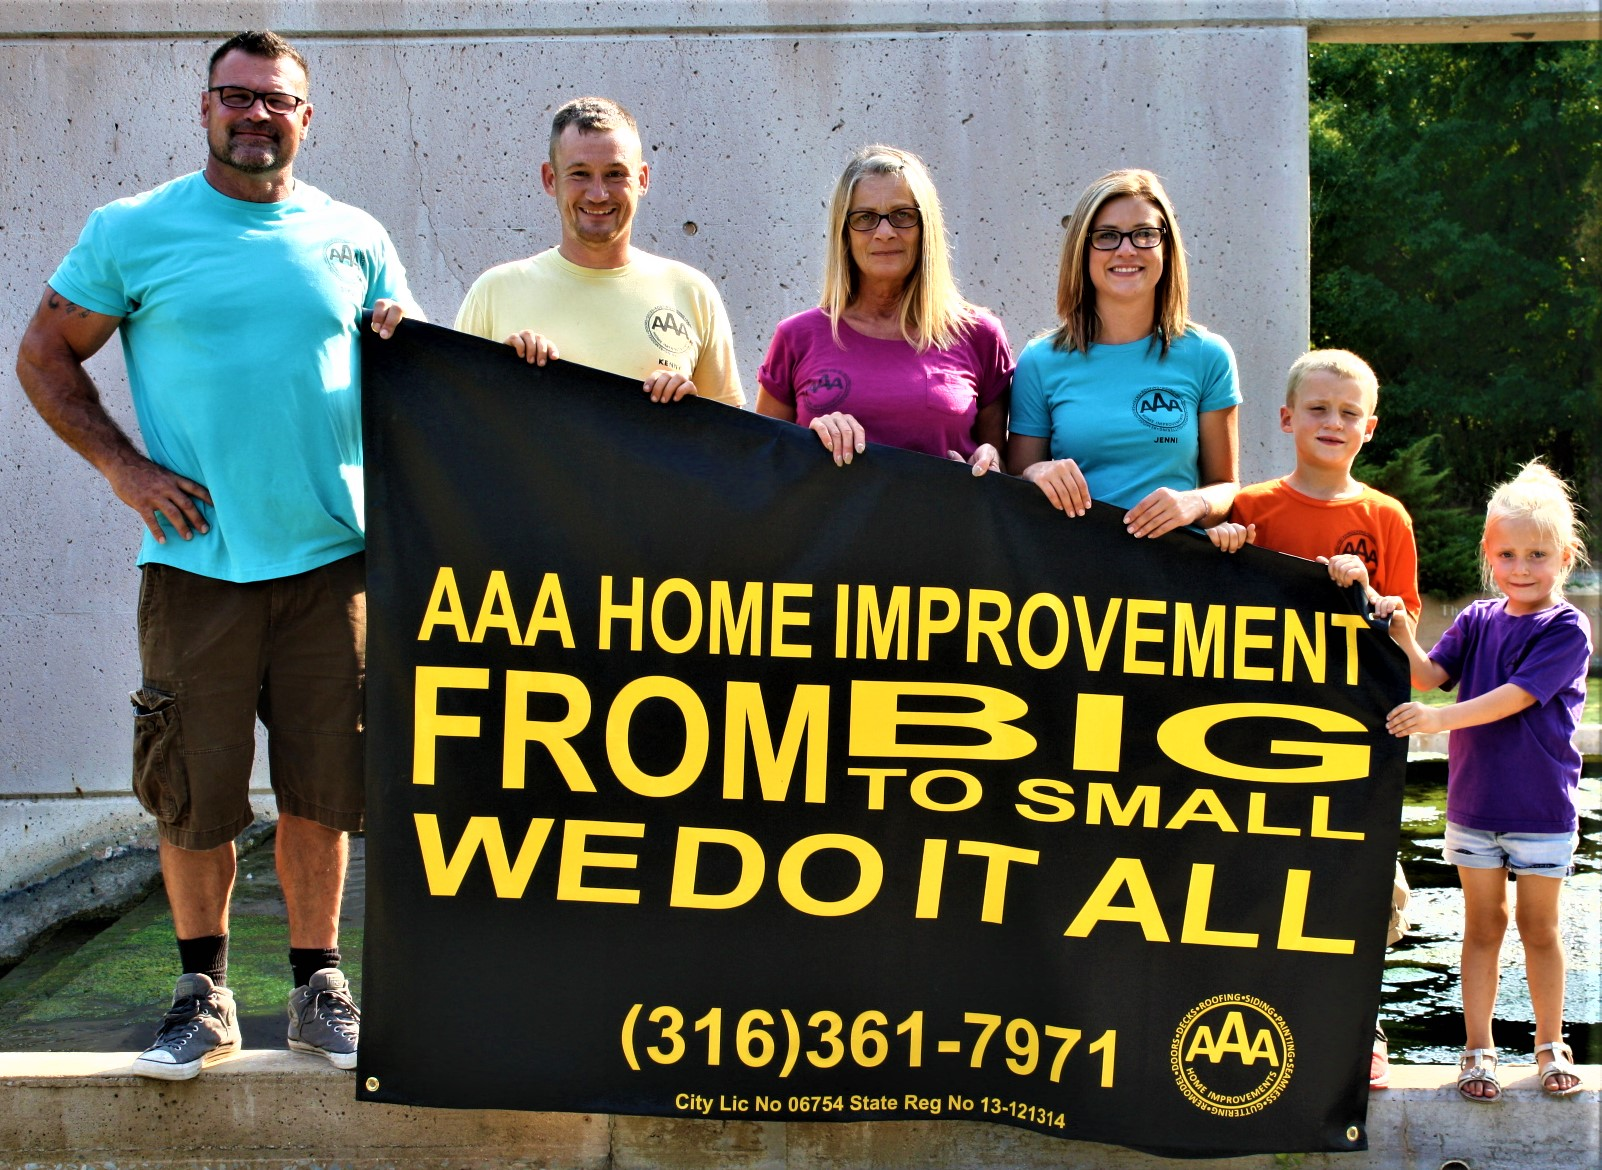 AAA Home Improvement image 1